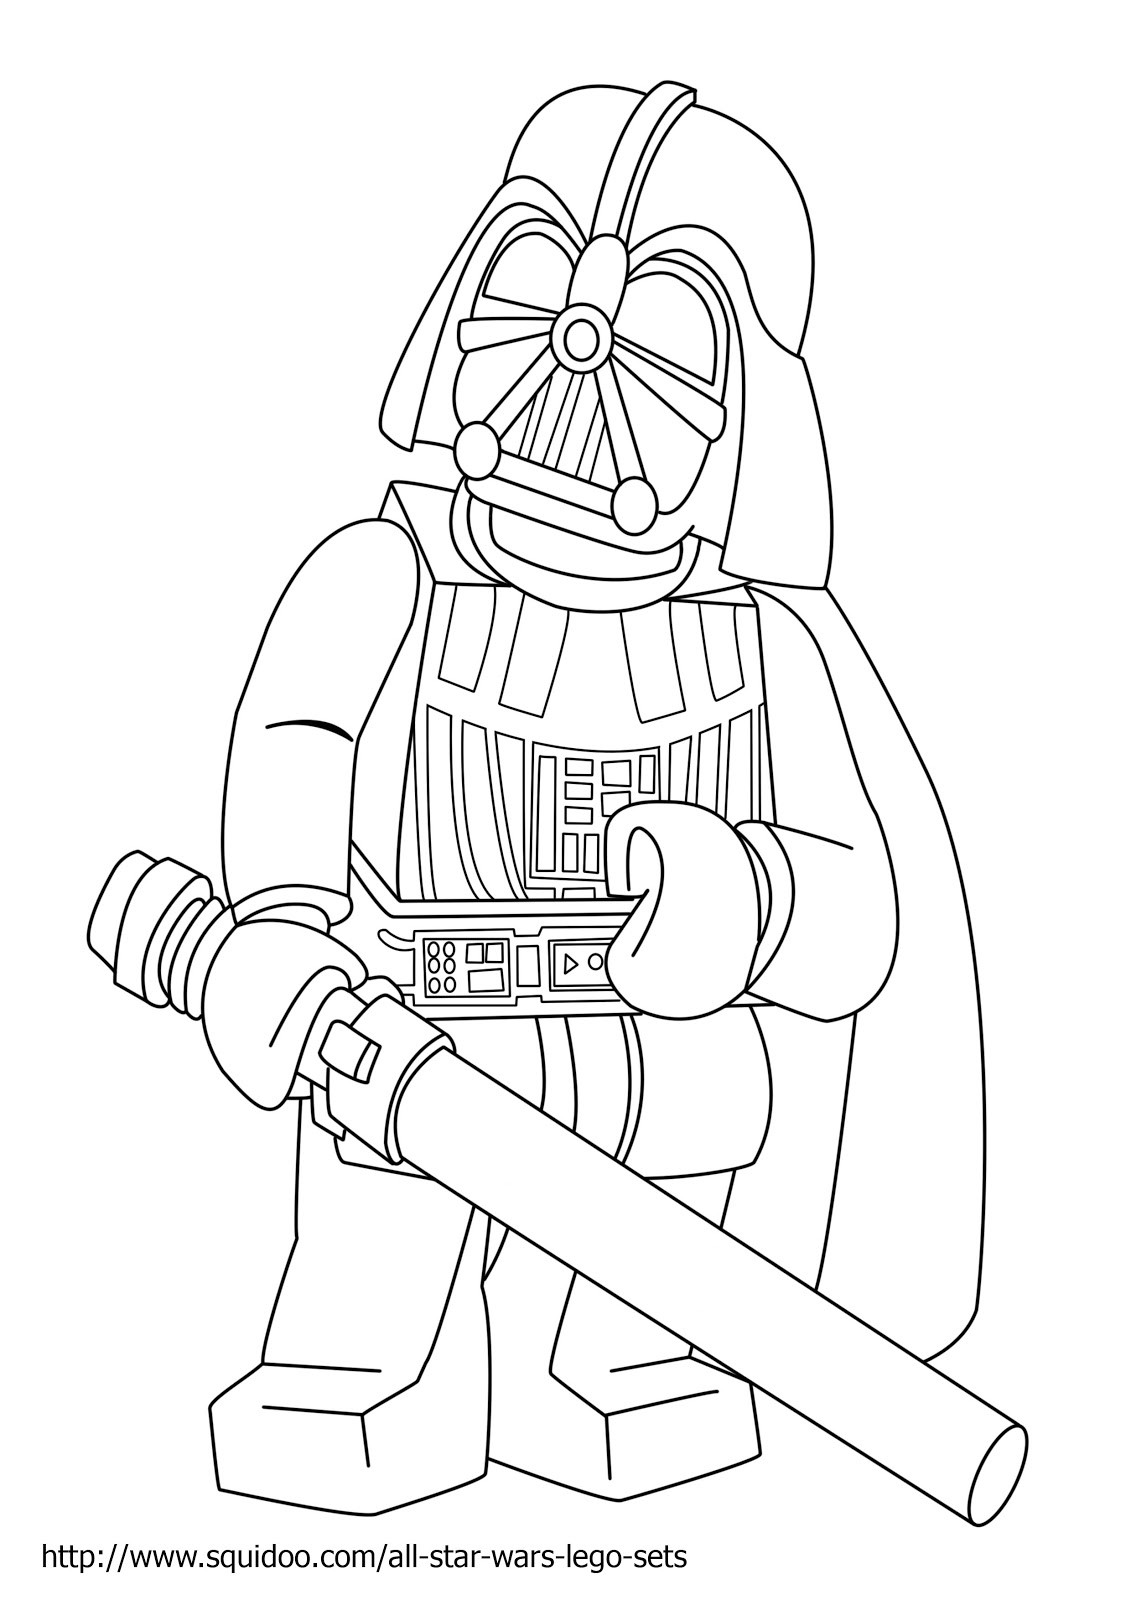 lego star wars boba fett coloring pages 341 best lego omalovánky images on pinterest coloring wars pages lego star fett boba coloring